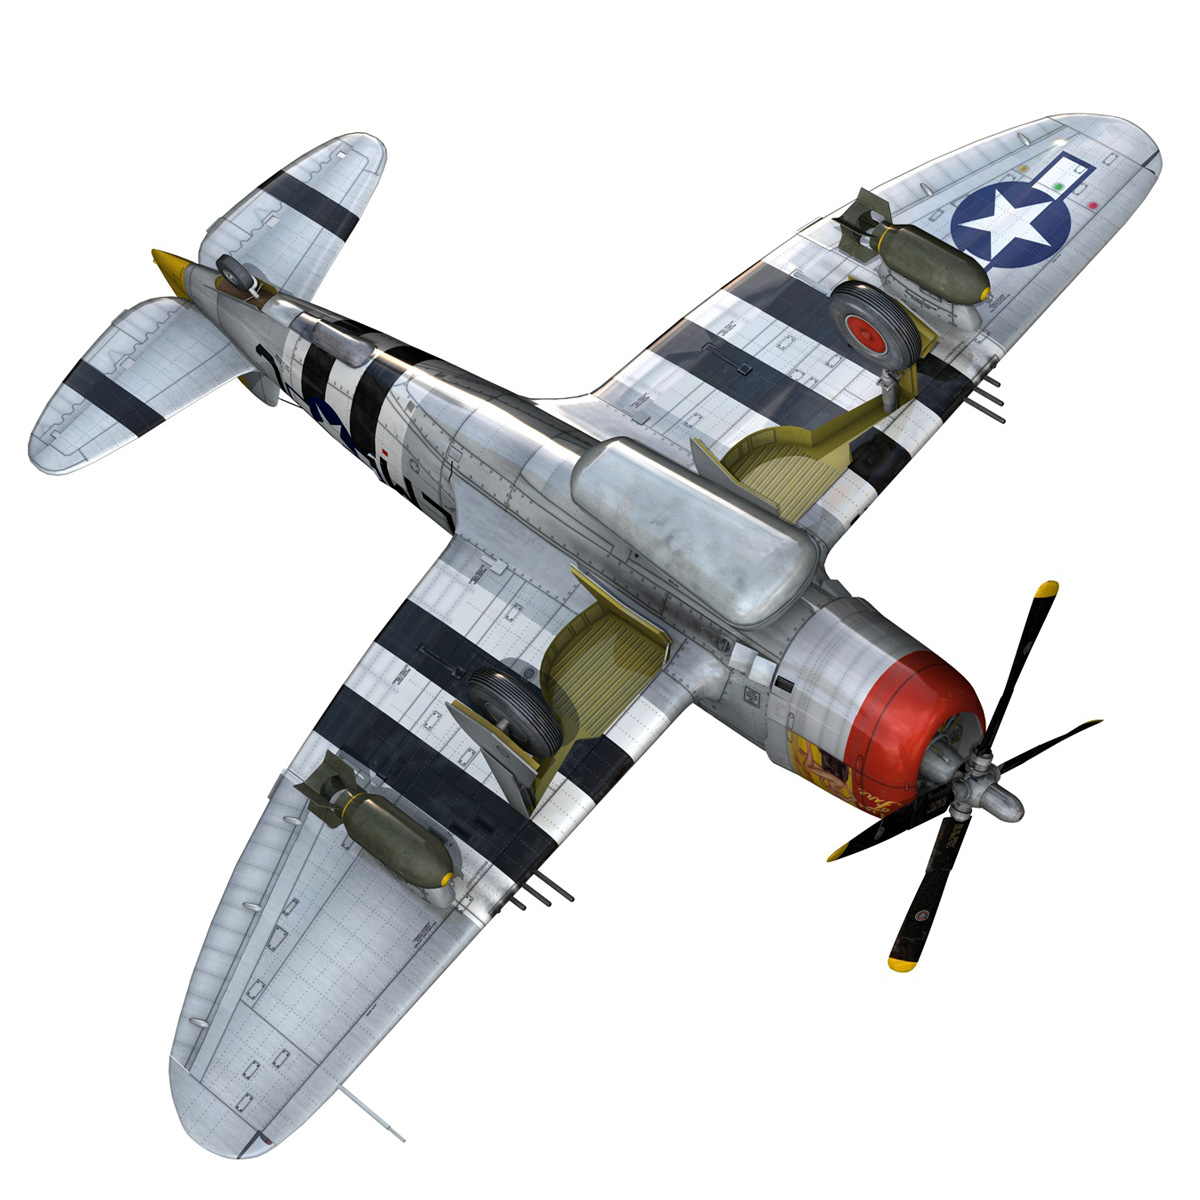 Republic P-47D Thunderbolt - Rozzie Geth II 3d model  279785